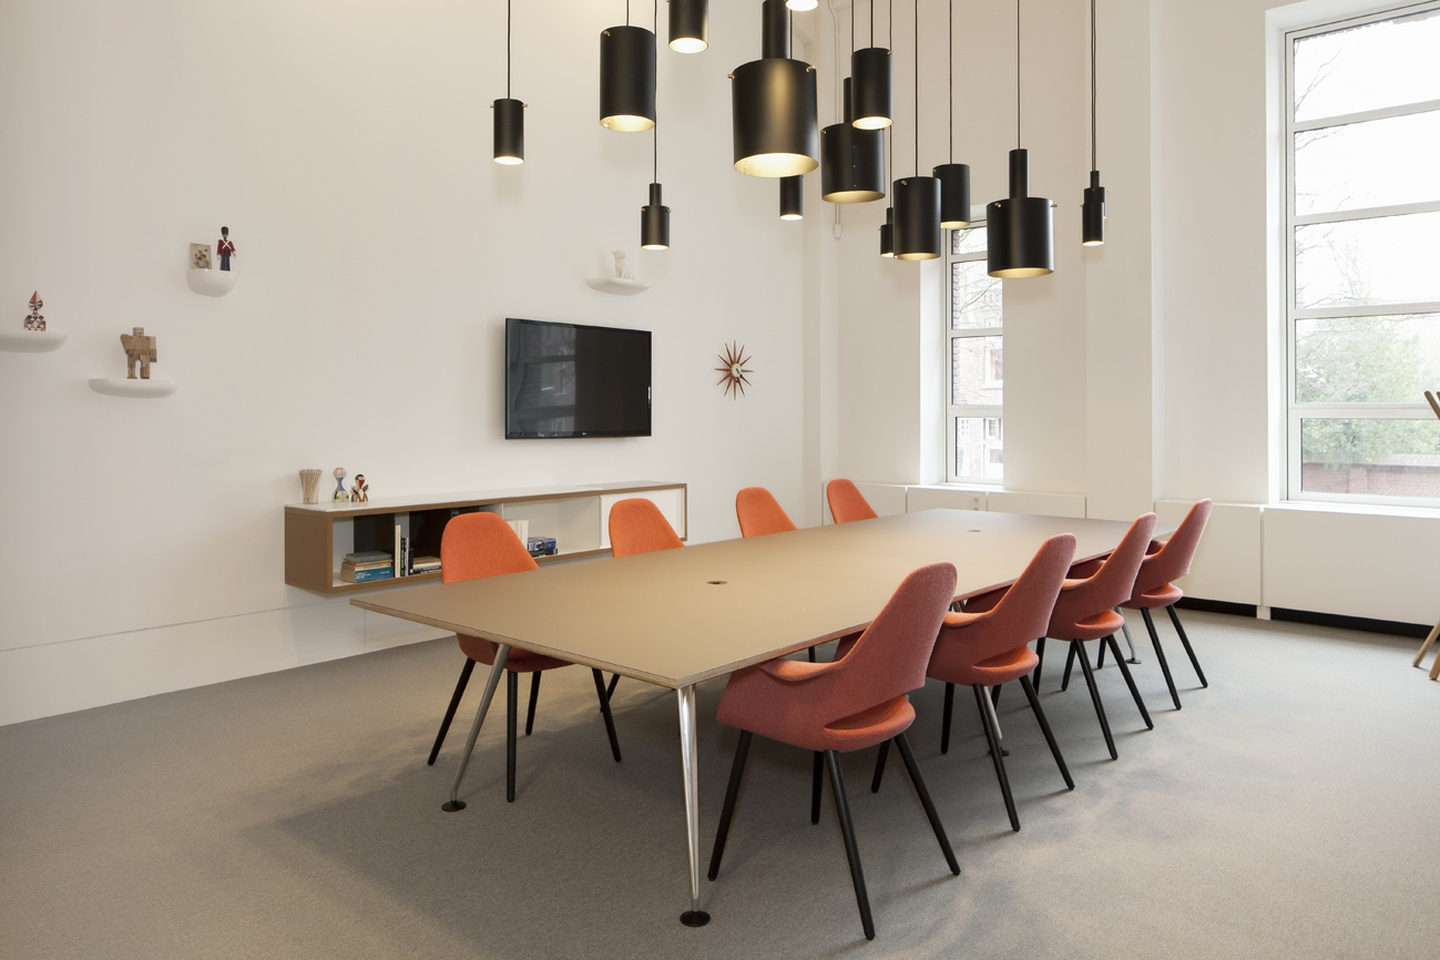 The Hague Train station meeting rooms Meetingraum Spaces Rode Olifant - Room 8 image 0